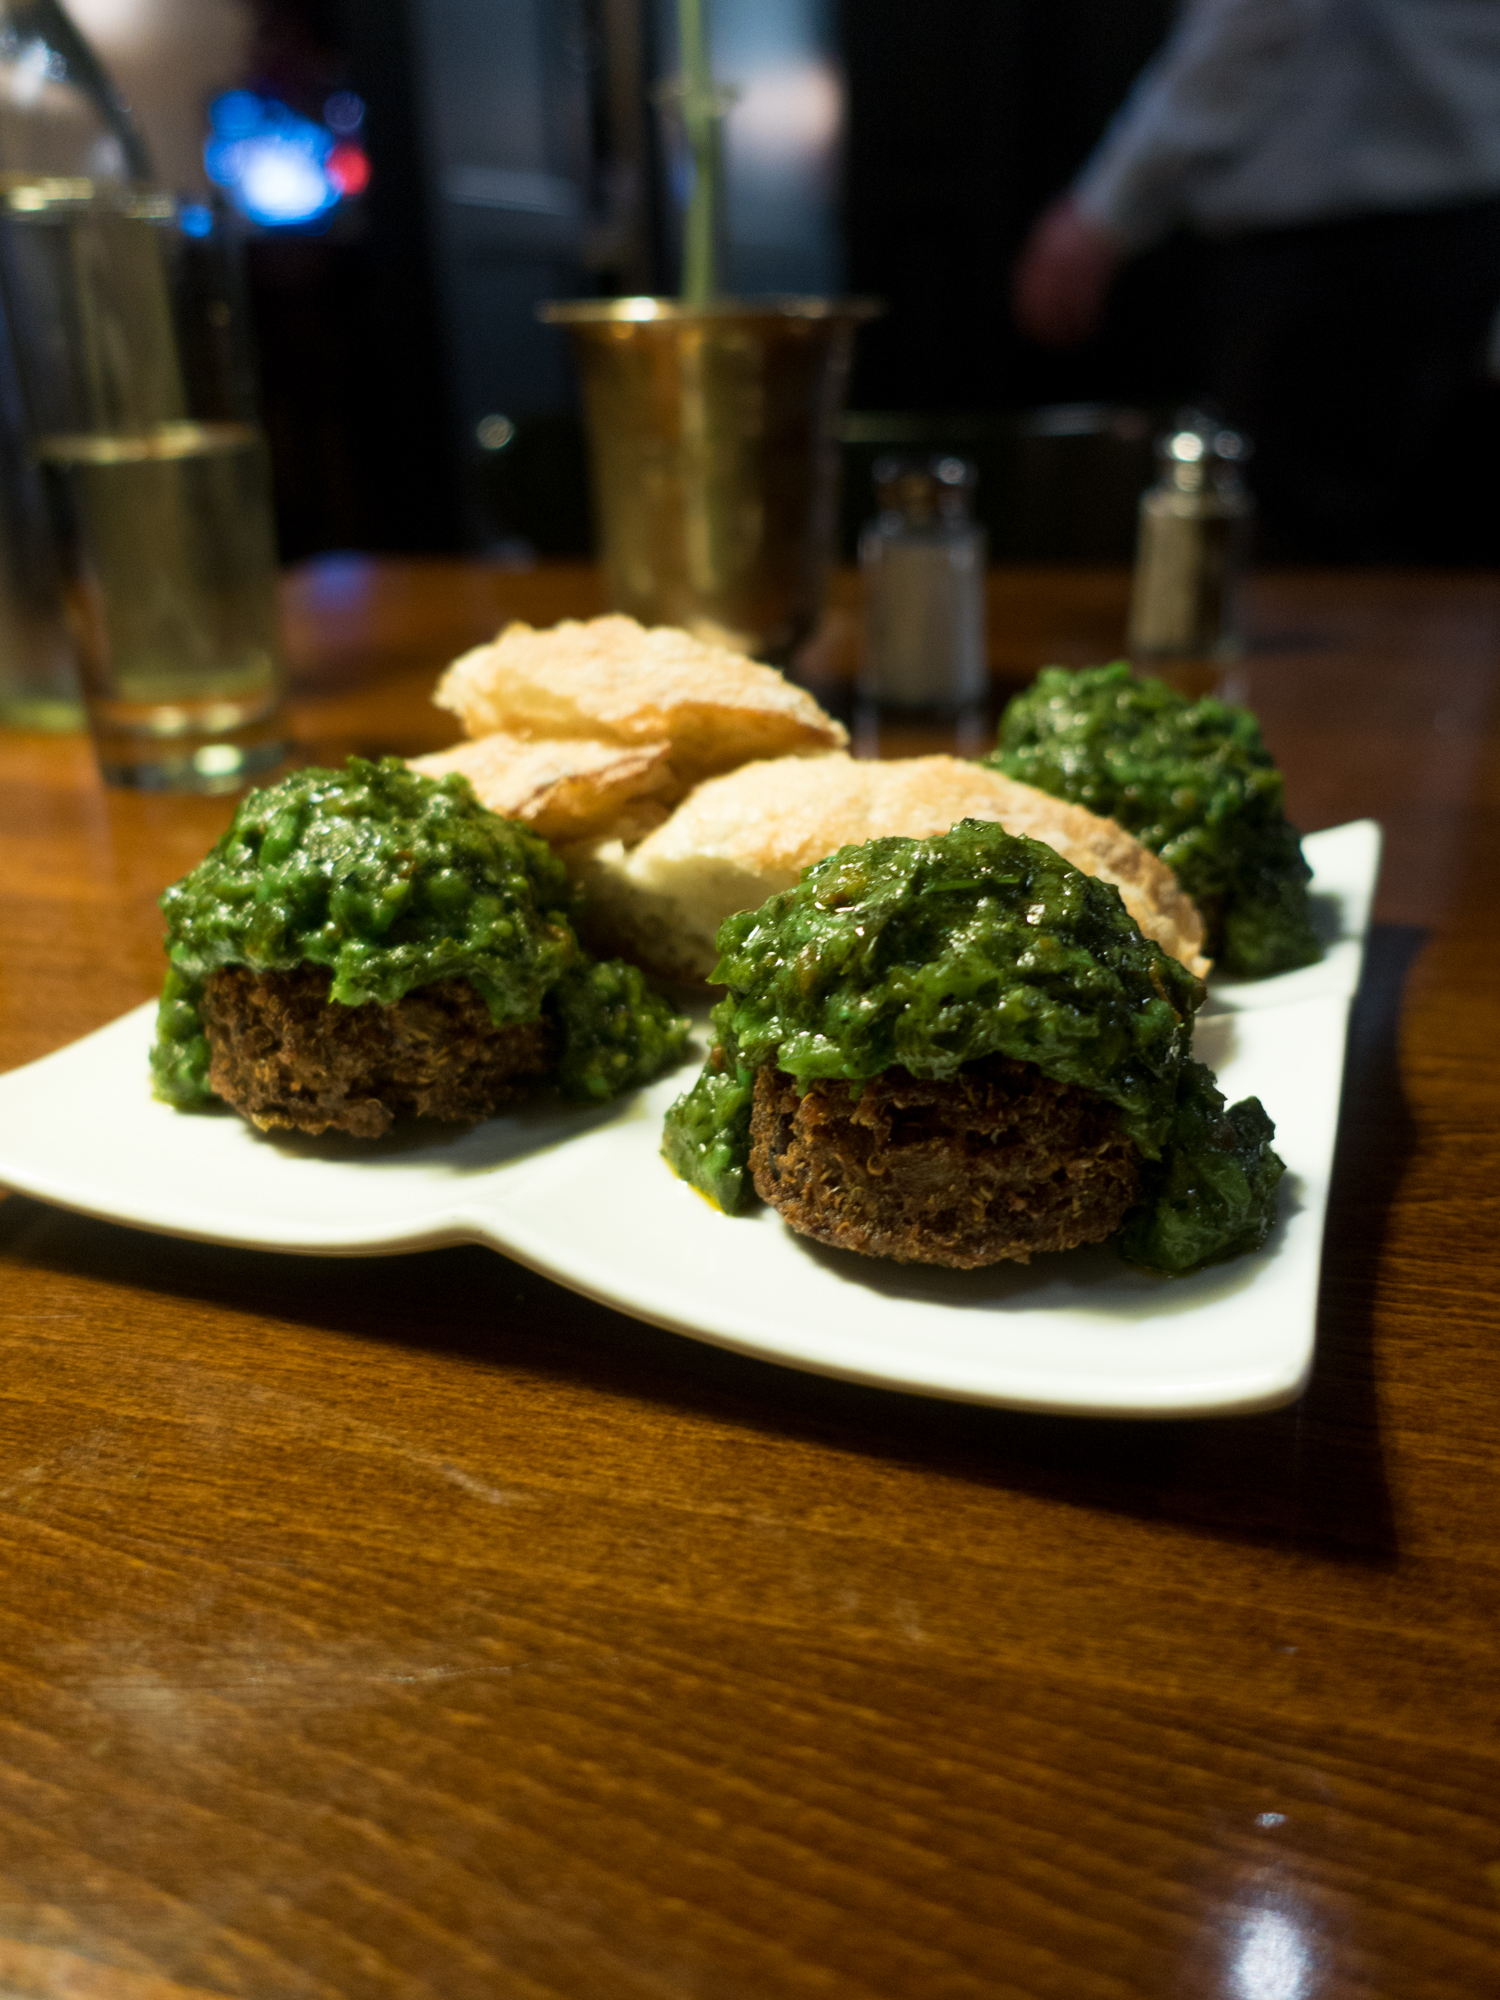 At Mimi Blue Meatballs, you'll find a meatball focused menu. There are meatball options for everyone—even vegan meatballs!